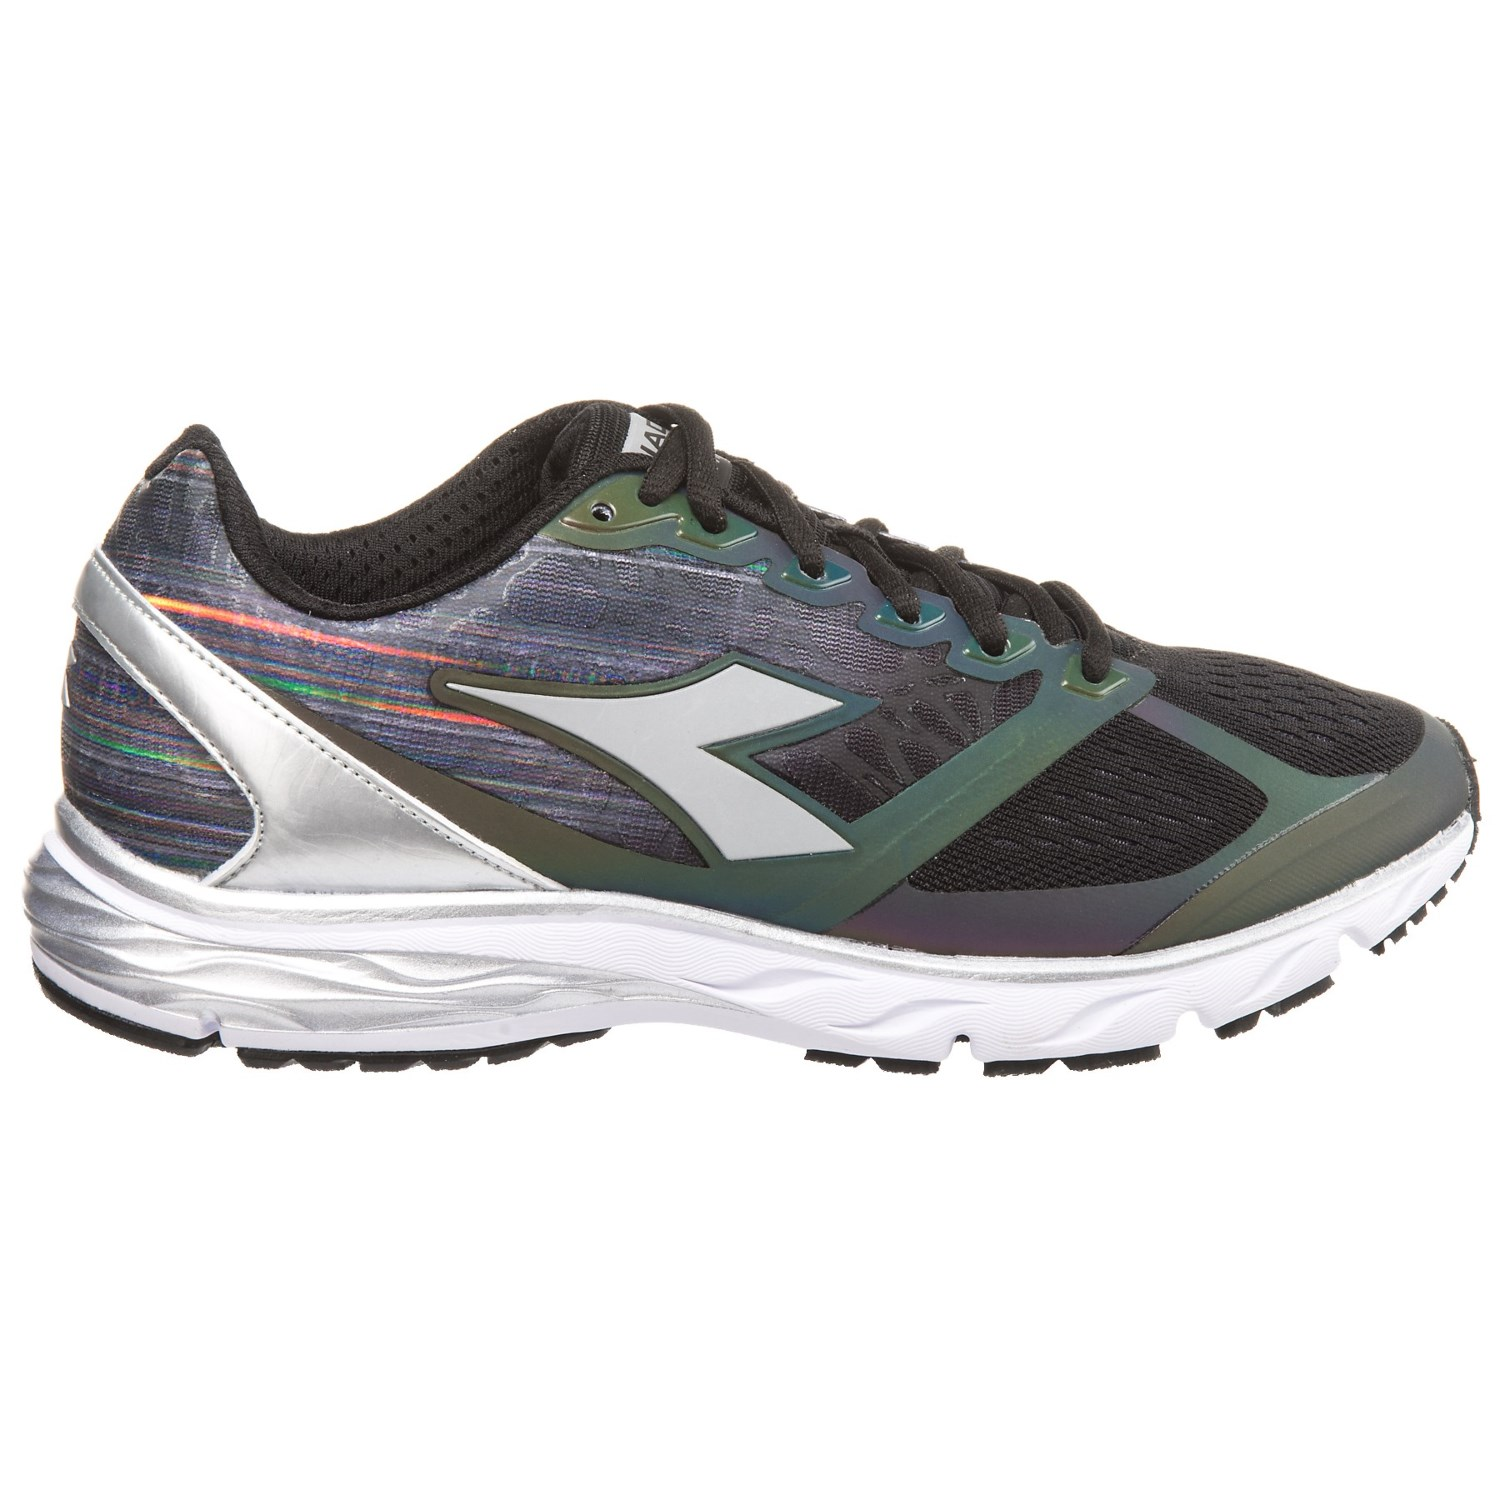 diadora mythos blushield hip running shoes for